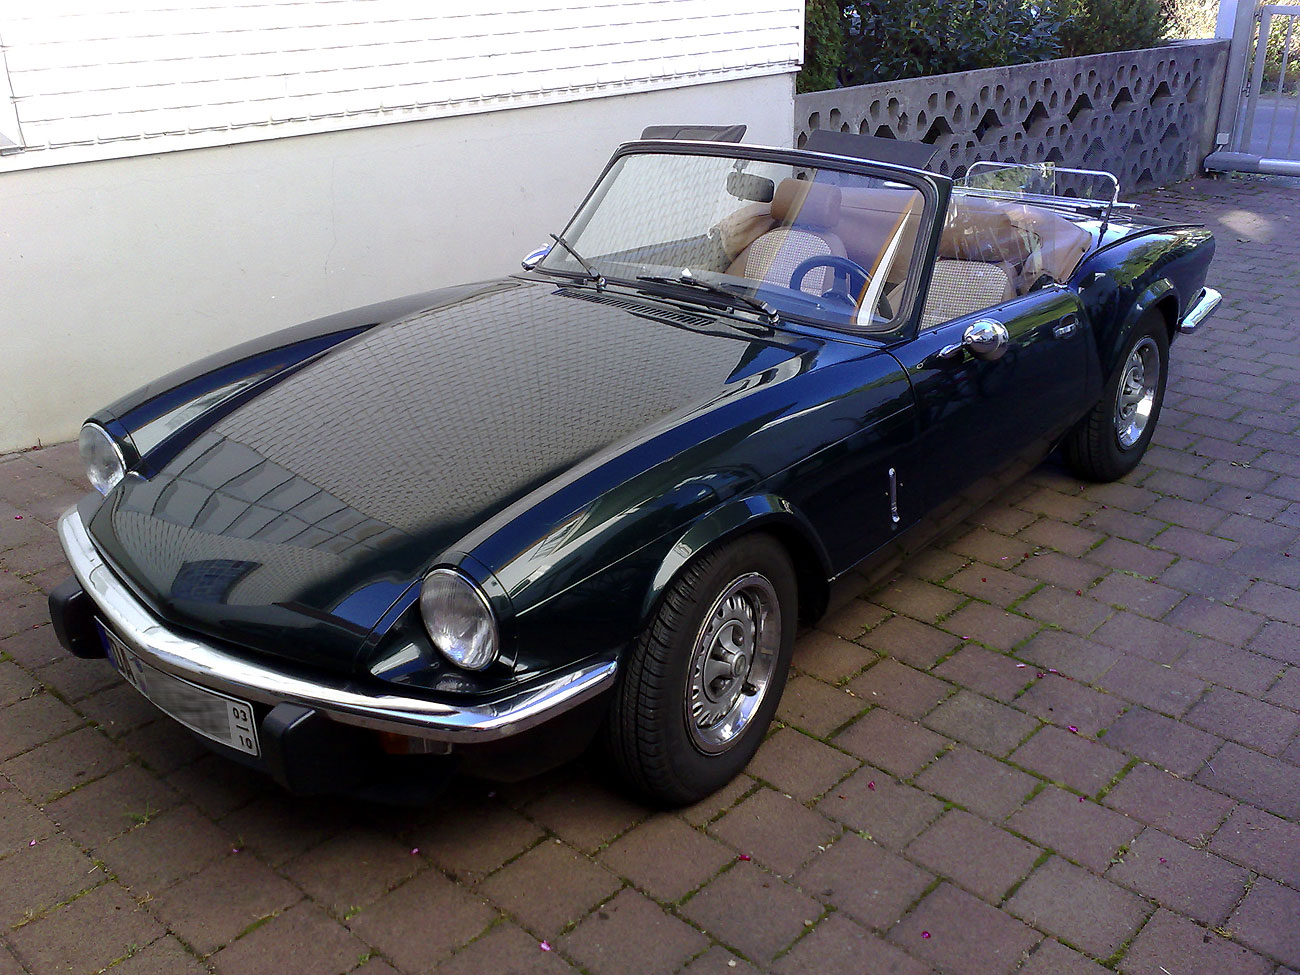 Triumph Spitfire on purple convertible car seat